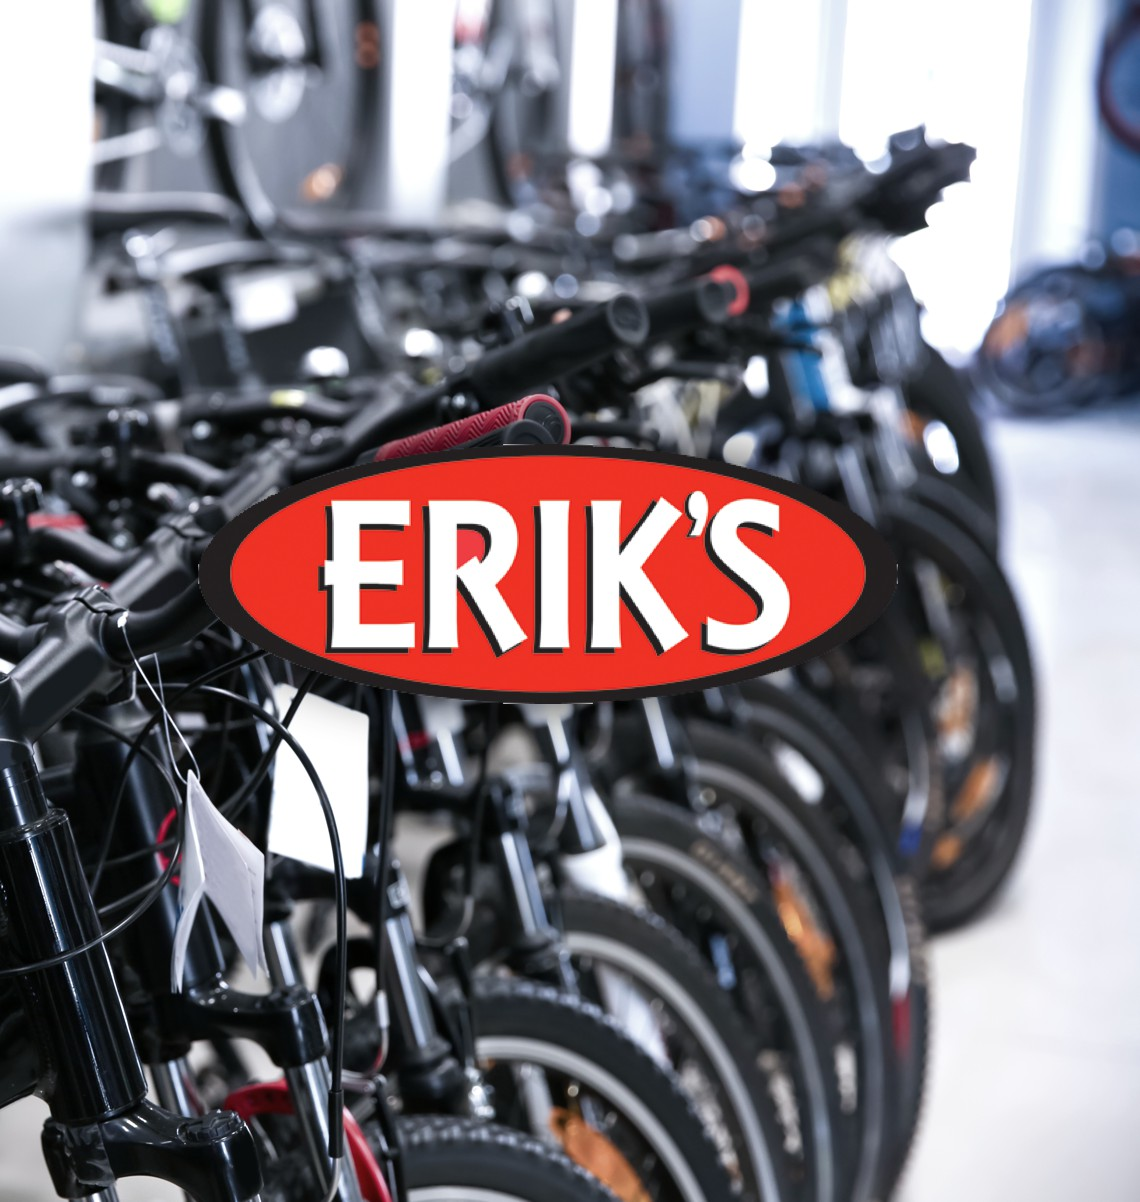 Eriks bike shop logo